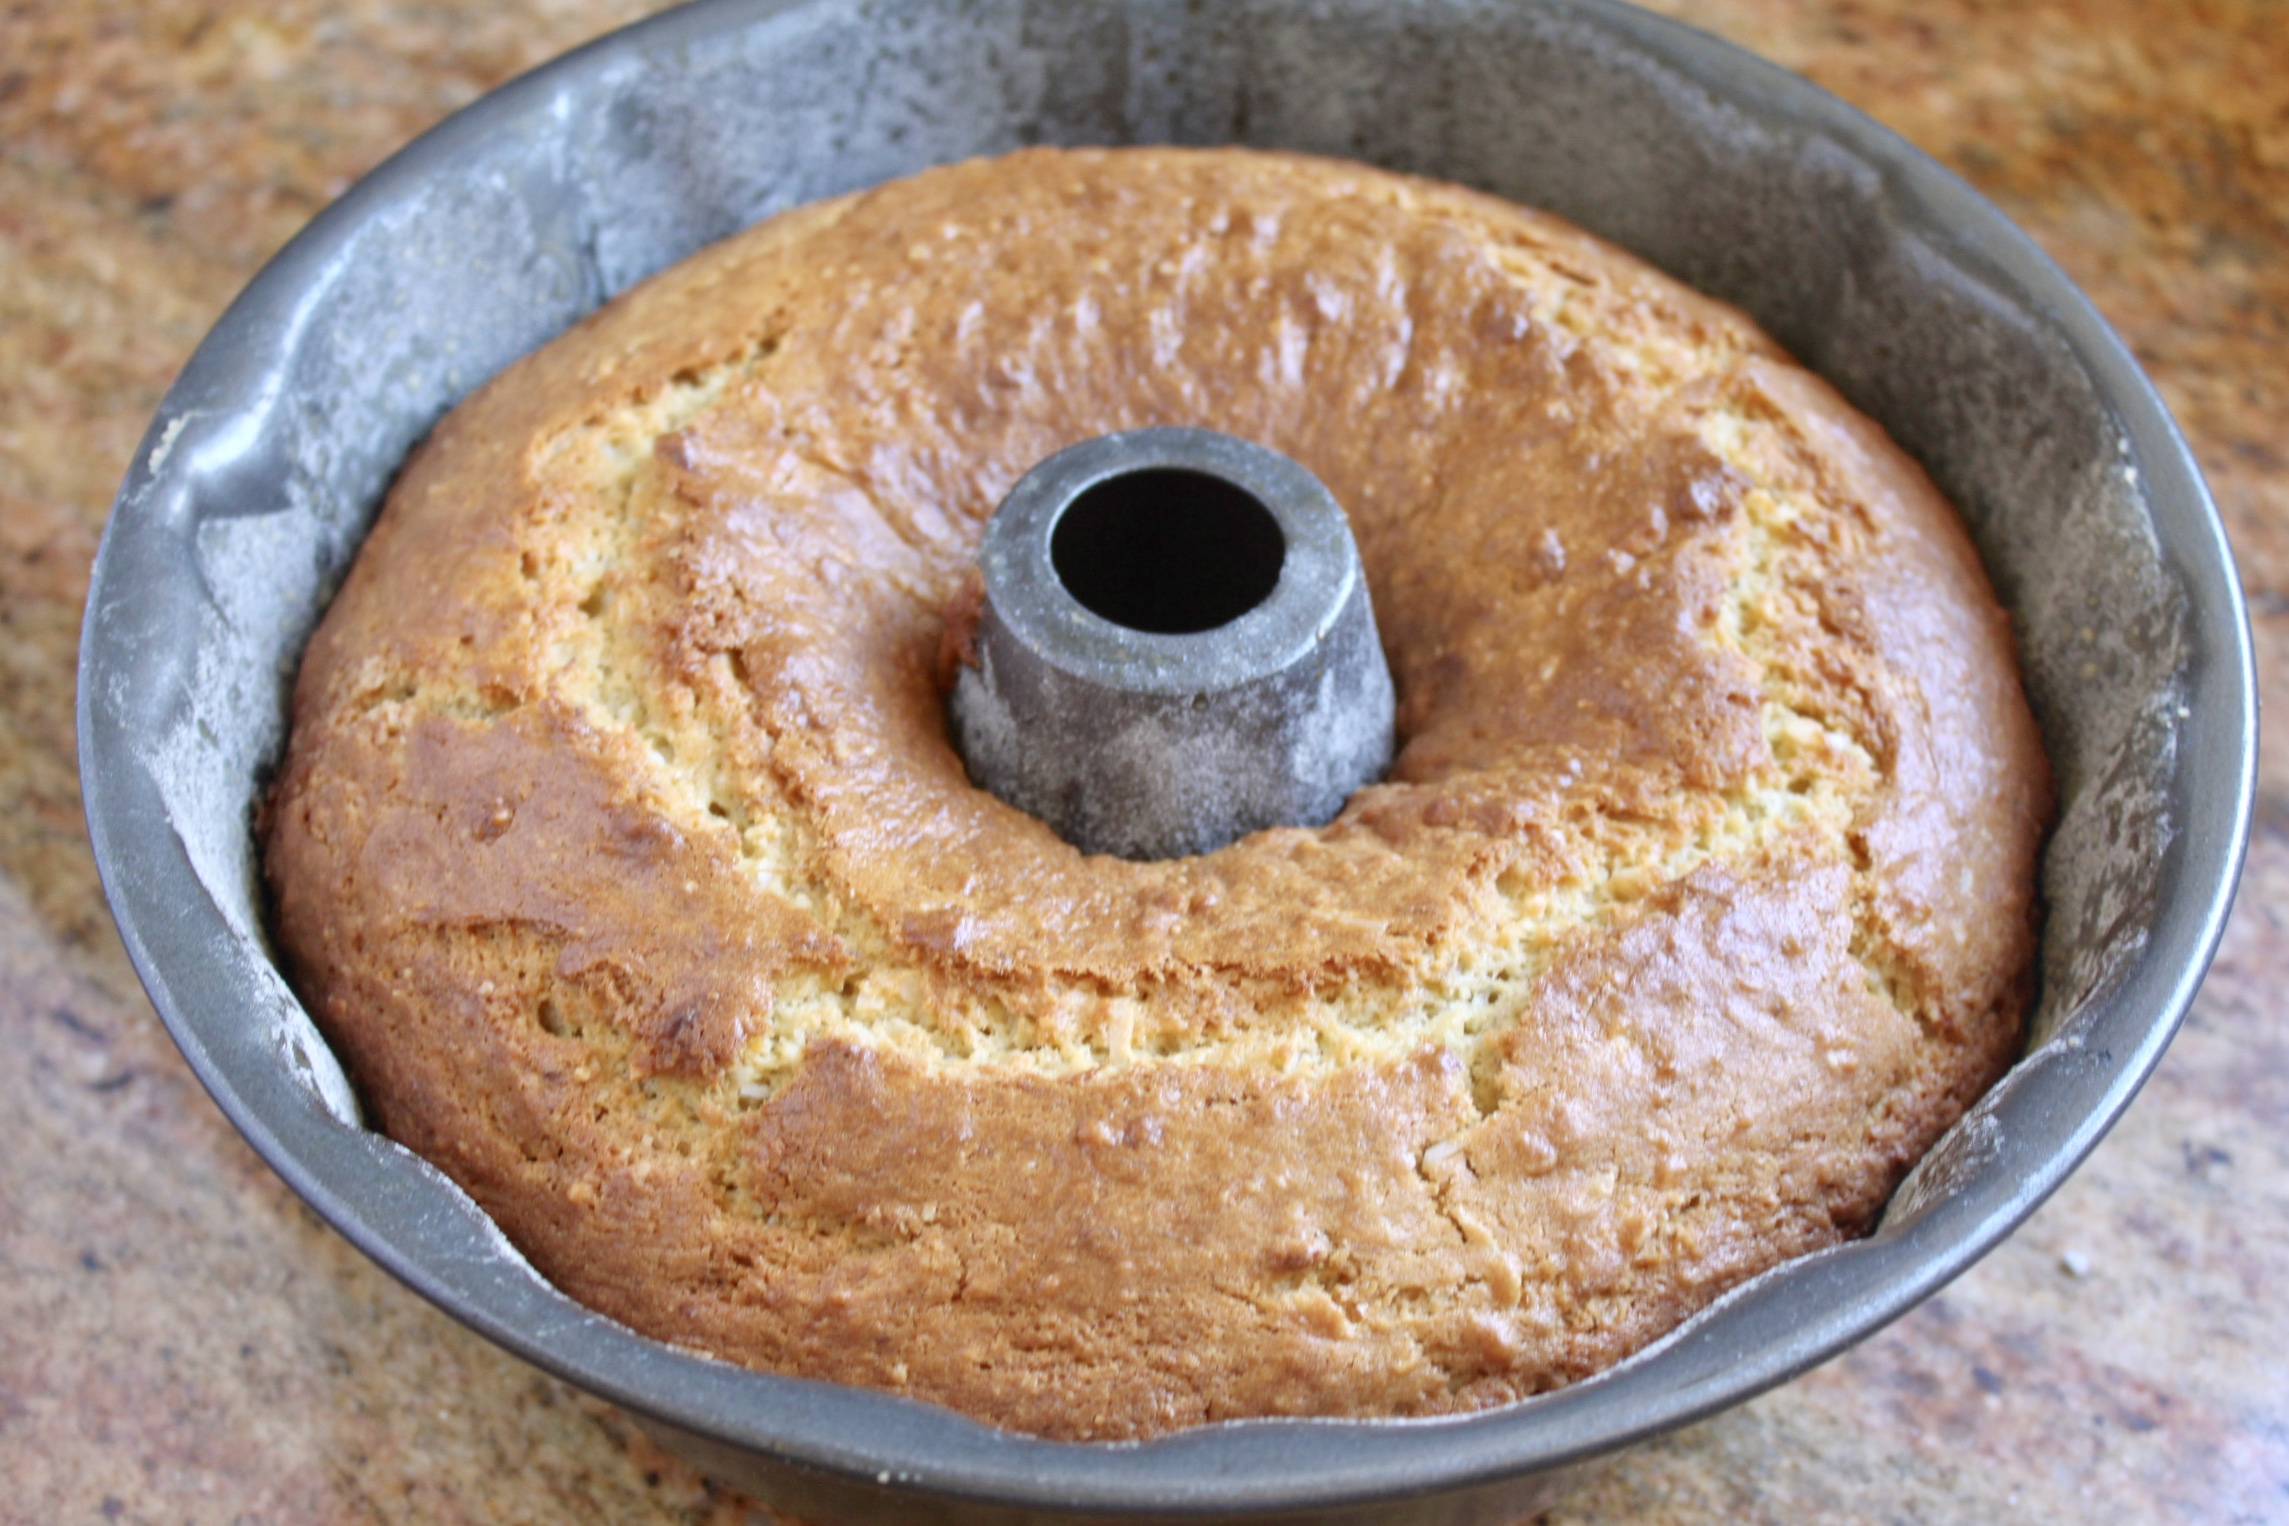 cake out of the oven in the bundt pan